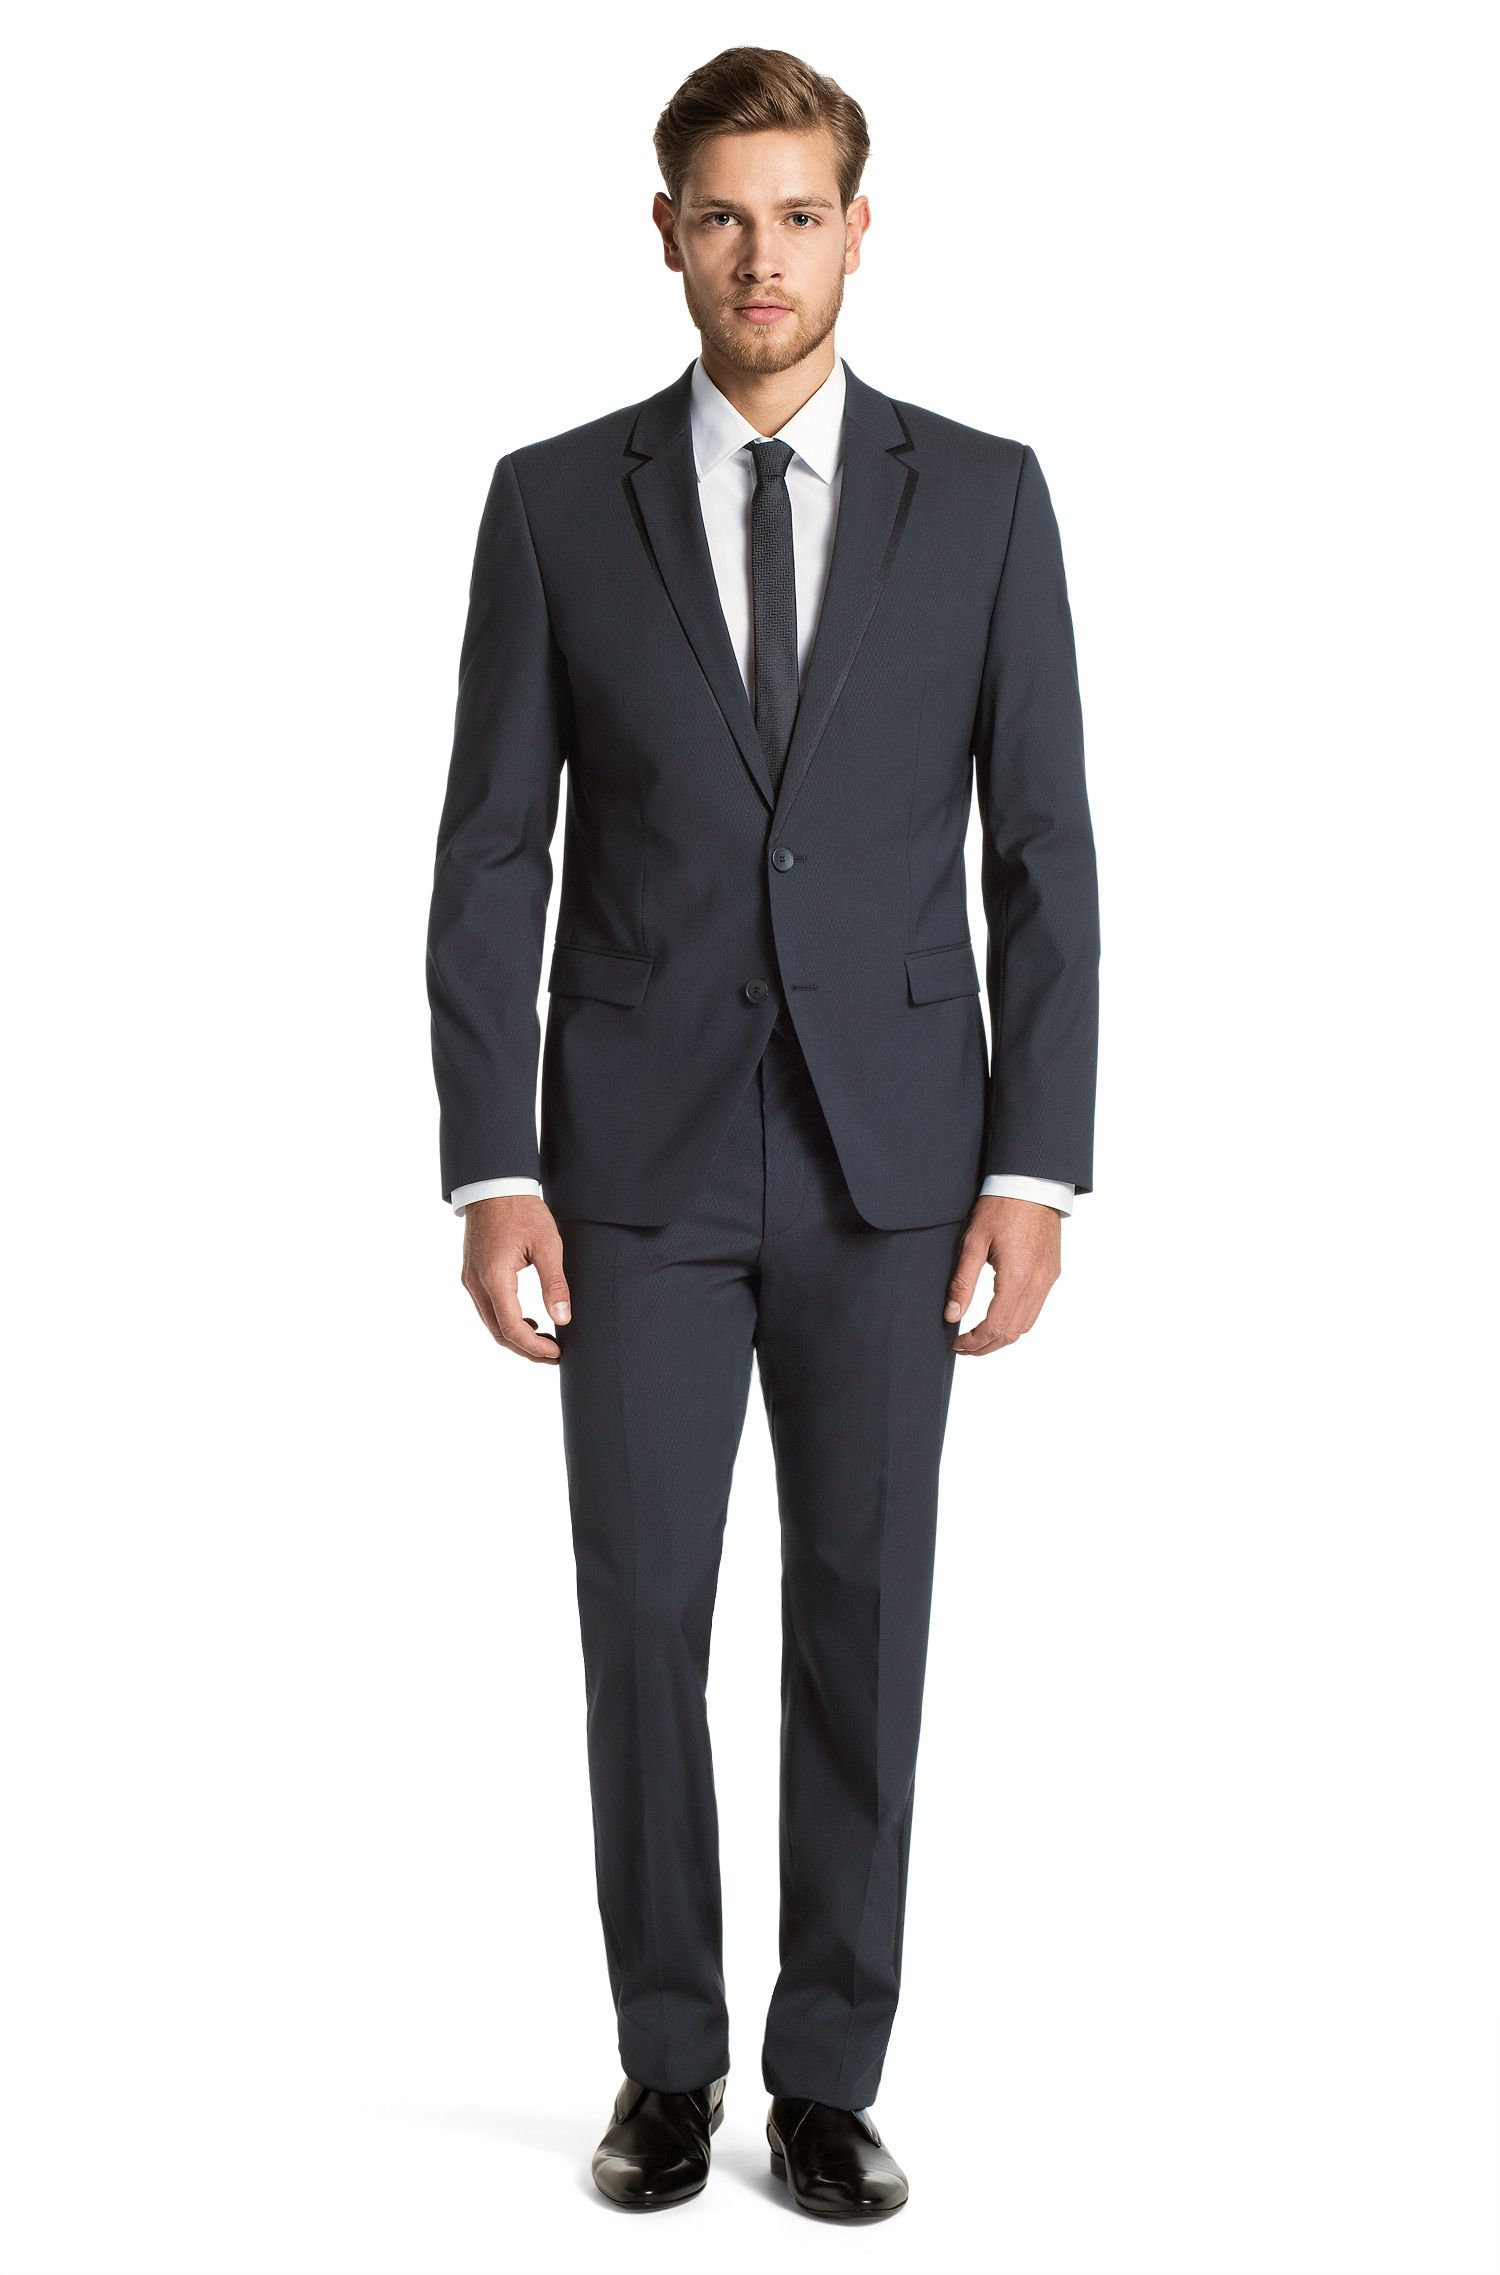 Costume Slim Fit, Ayken/Hemus